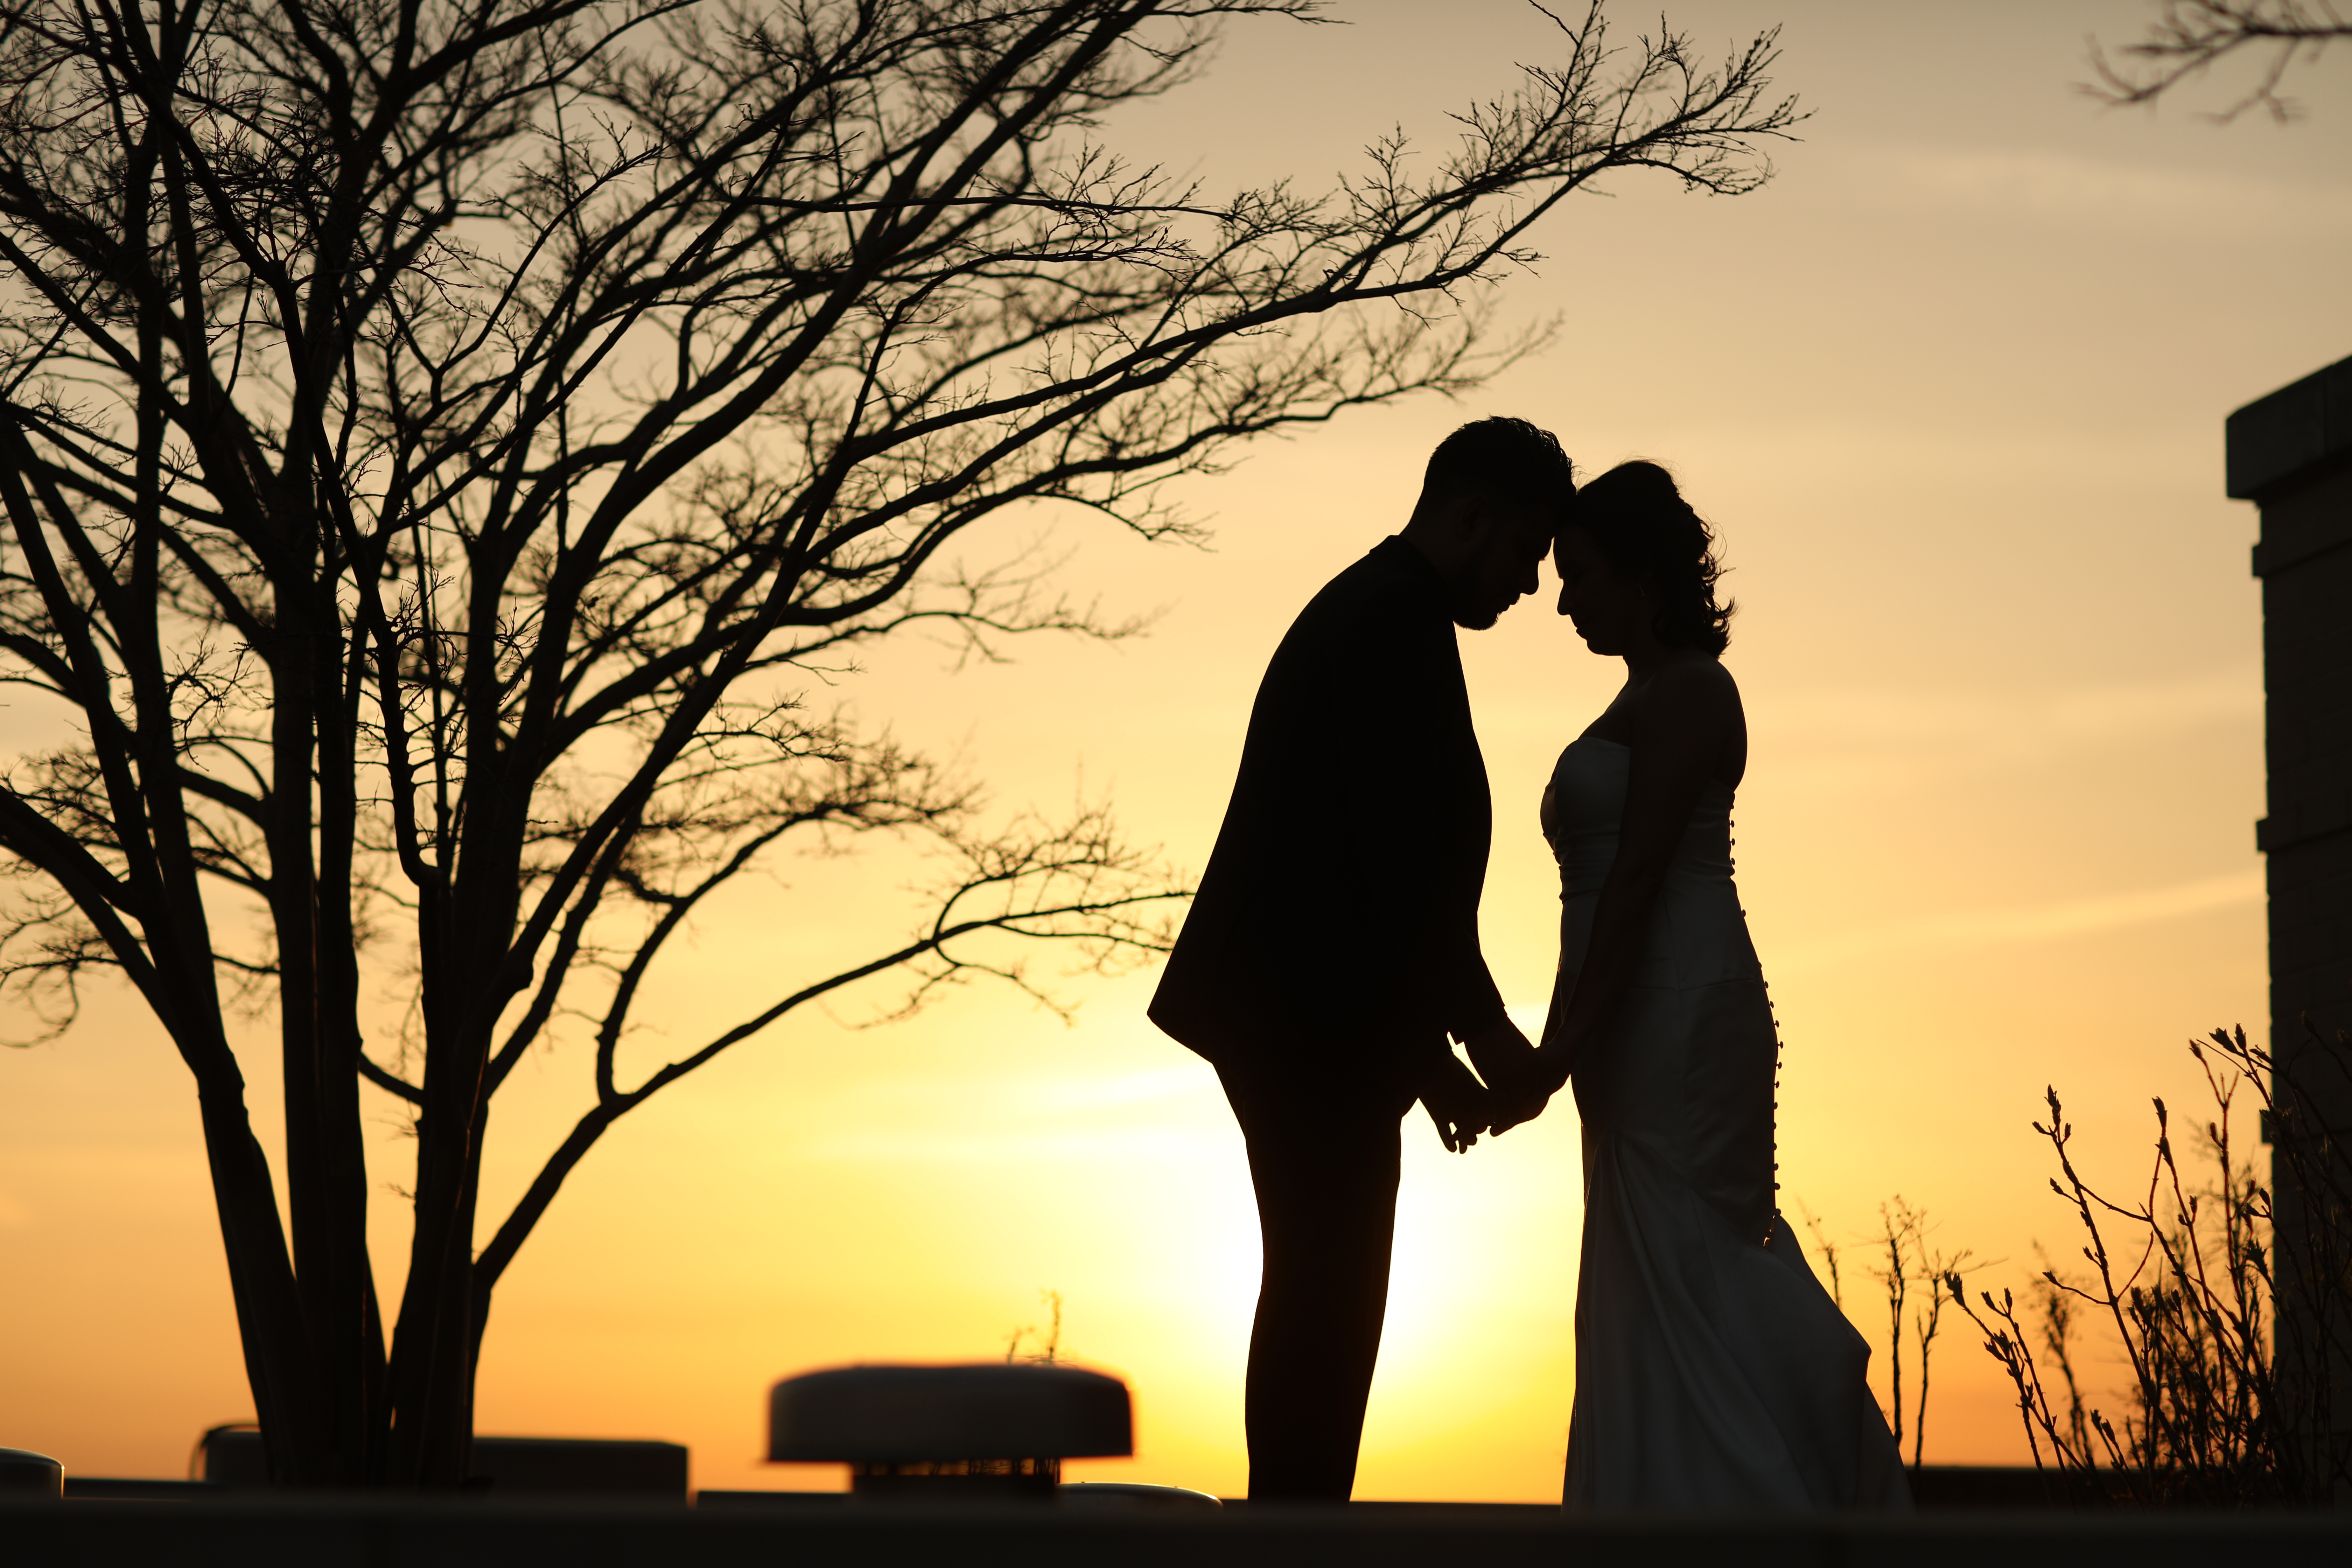 Two people embracing near a tree at sunset.